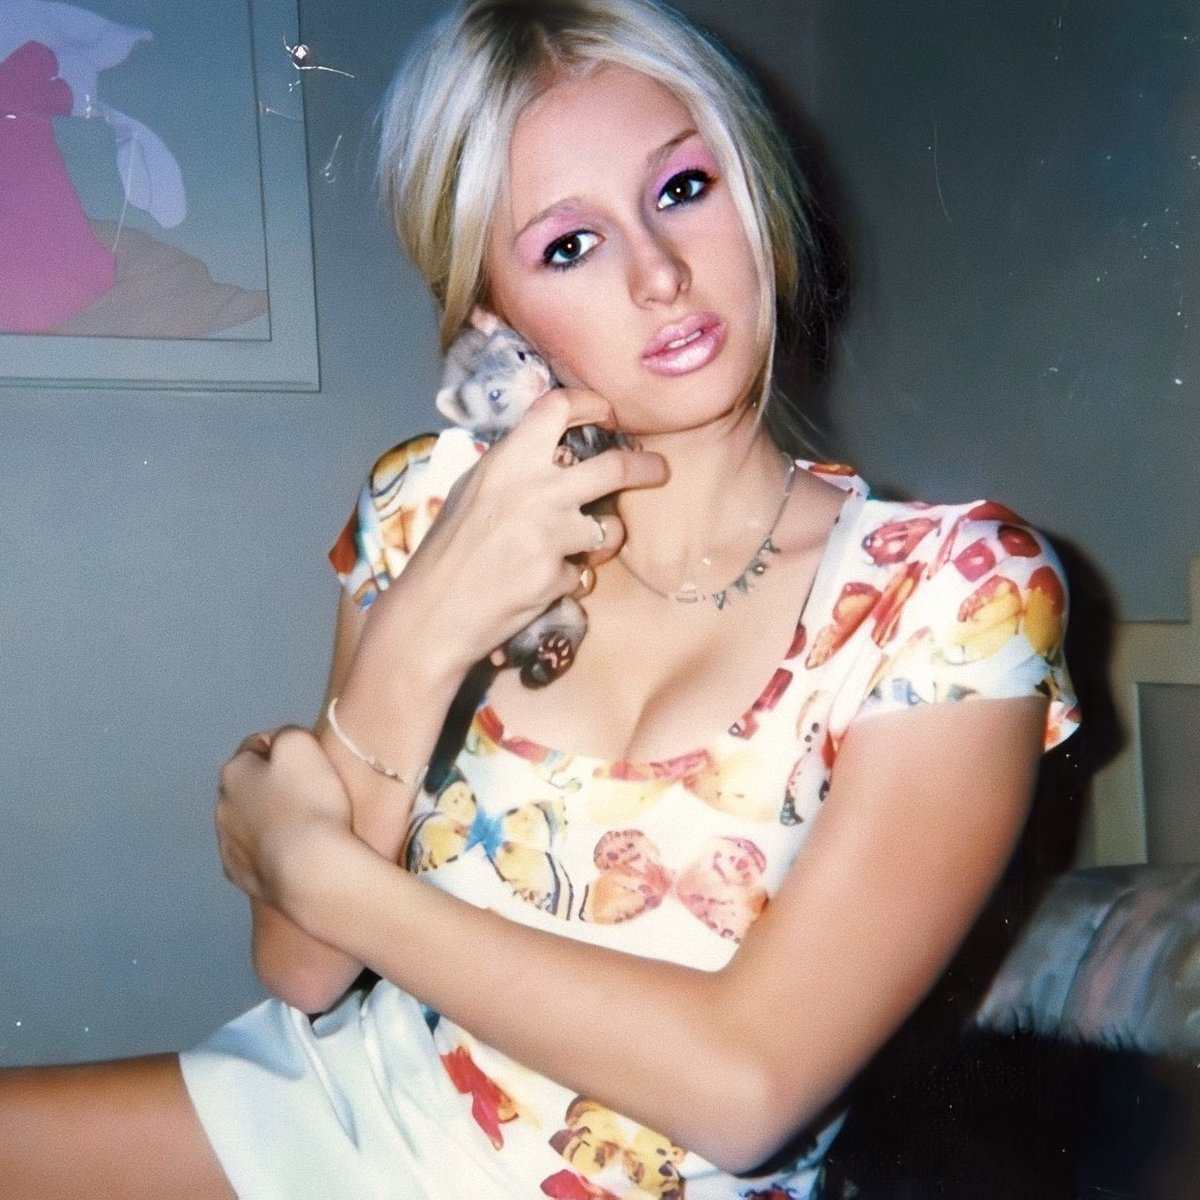 """#StayHome @ParisHilton: """"Back when I was 13 in #Vegas & decided to go an to exotic pet store to buy a ferret & name her #FerretFawcett. 🥰 #TeenParis 👱🏻♀️ #NationalFerretDay """" /"""